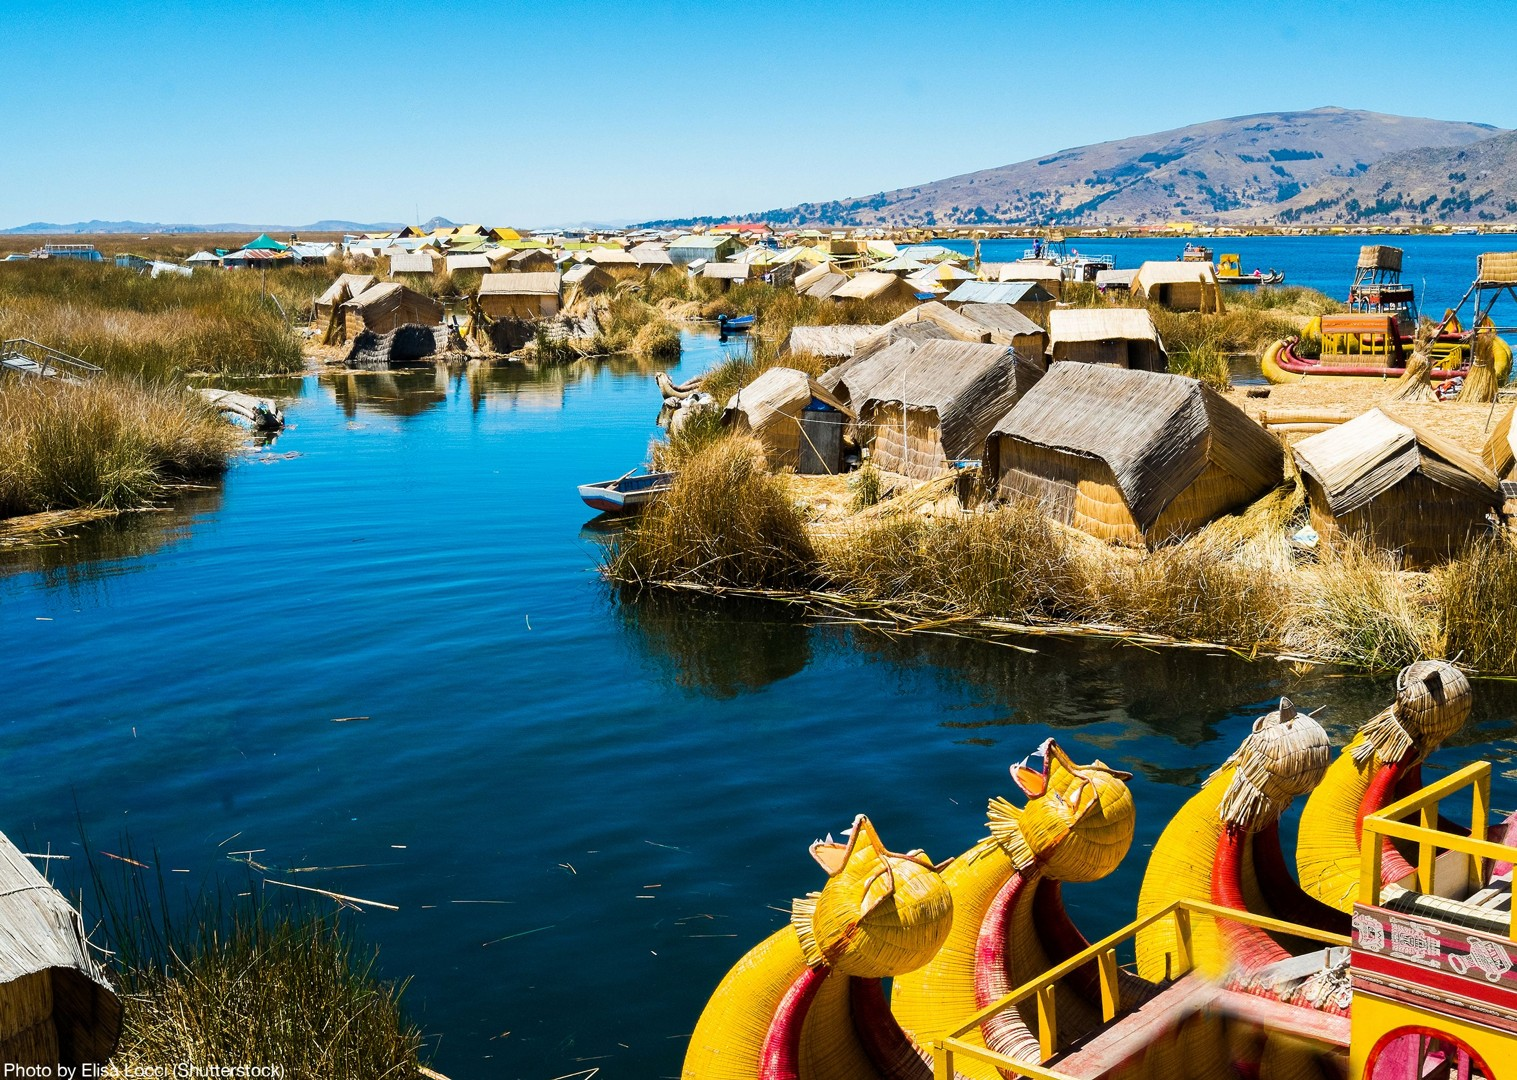 lago-titicaca-guided-mountain-bike-holiday-peru-andean-journey.jpg - Peru - Andean Journey - Guided Mountain Bike Holiday - Mountain Biking